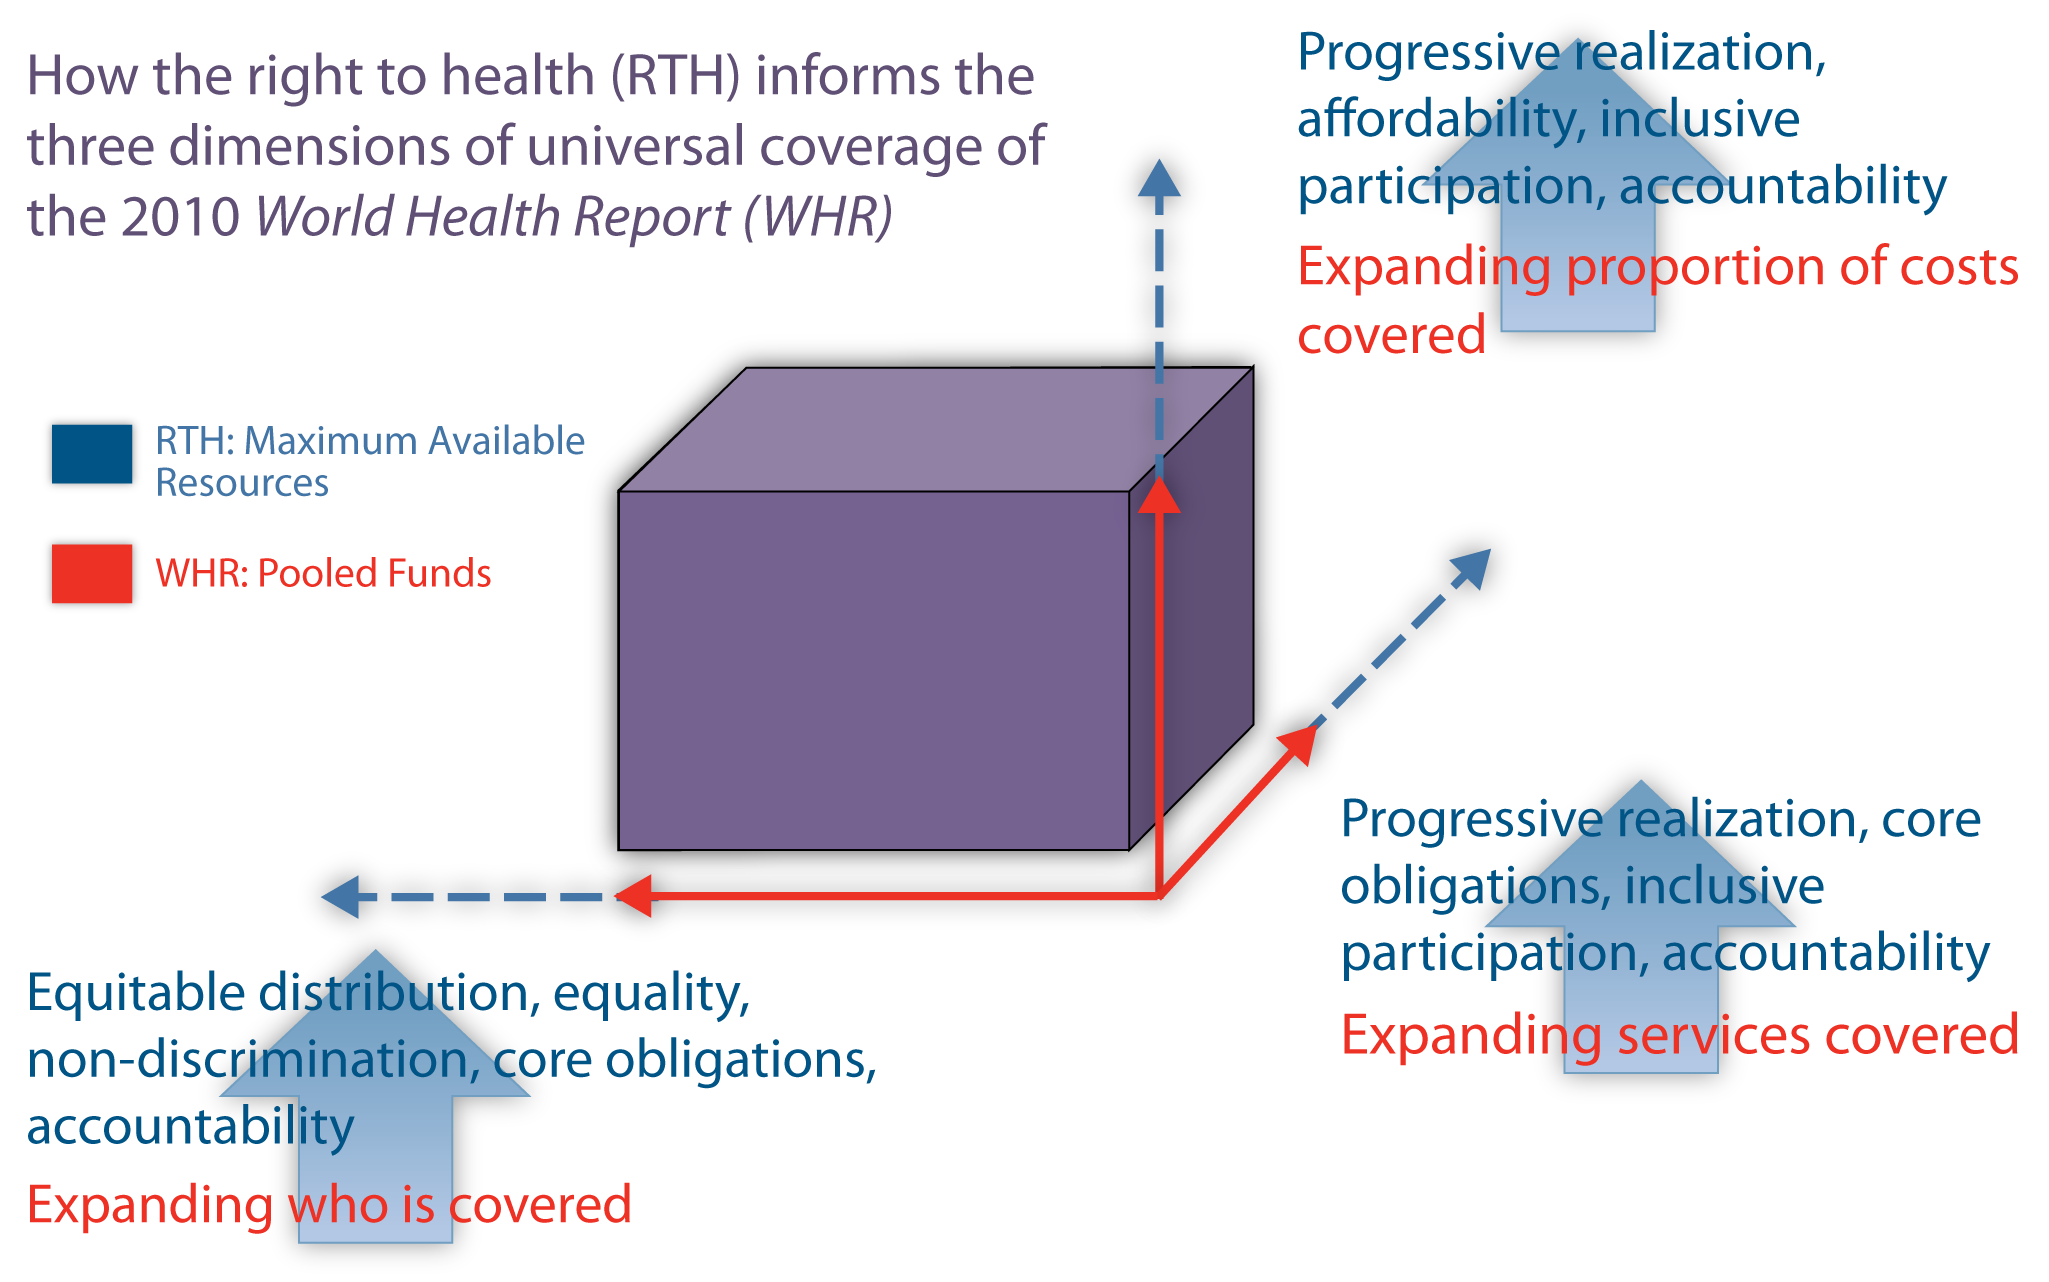 Universal health coverage and the right to health.